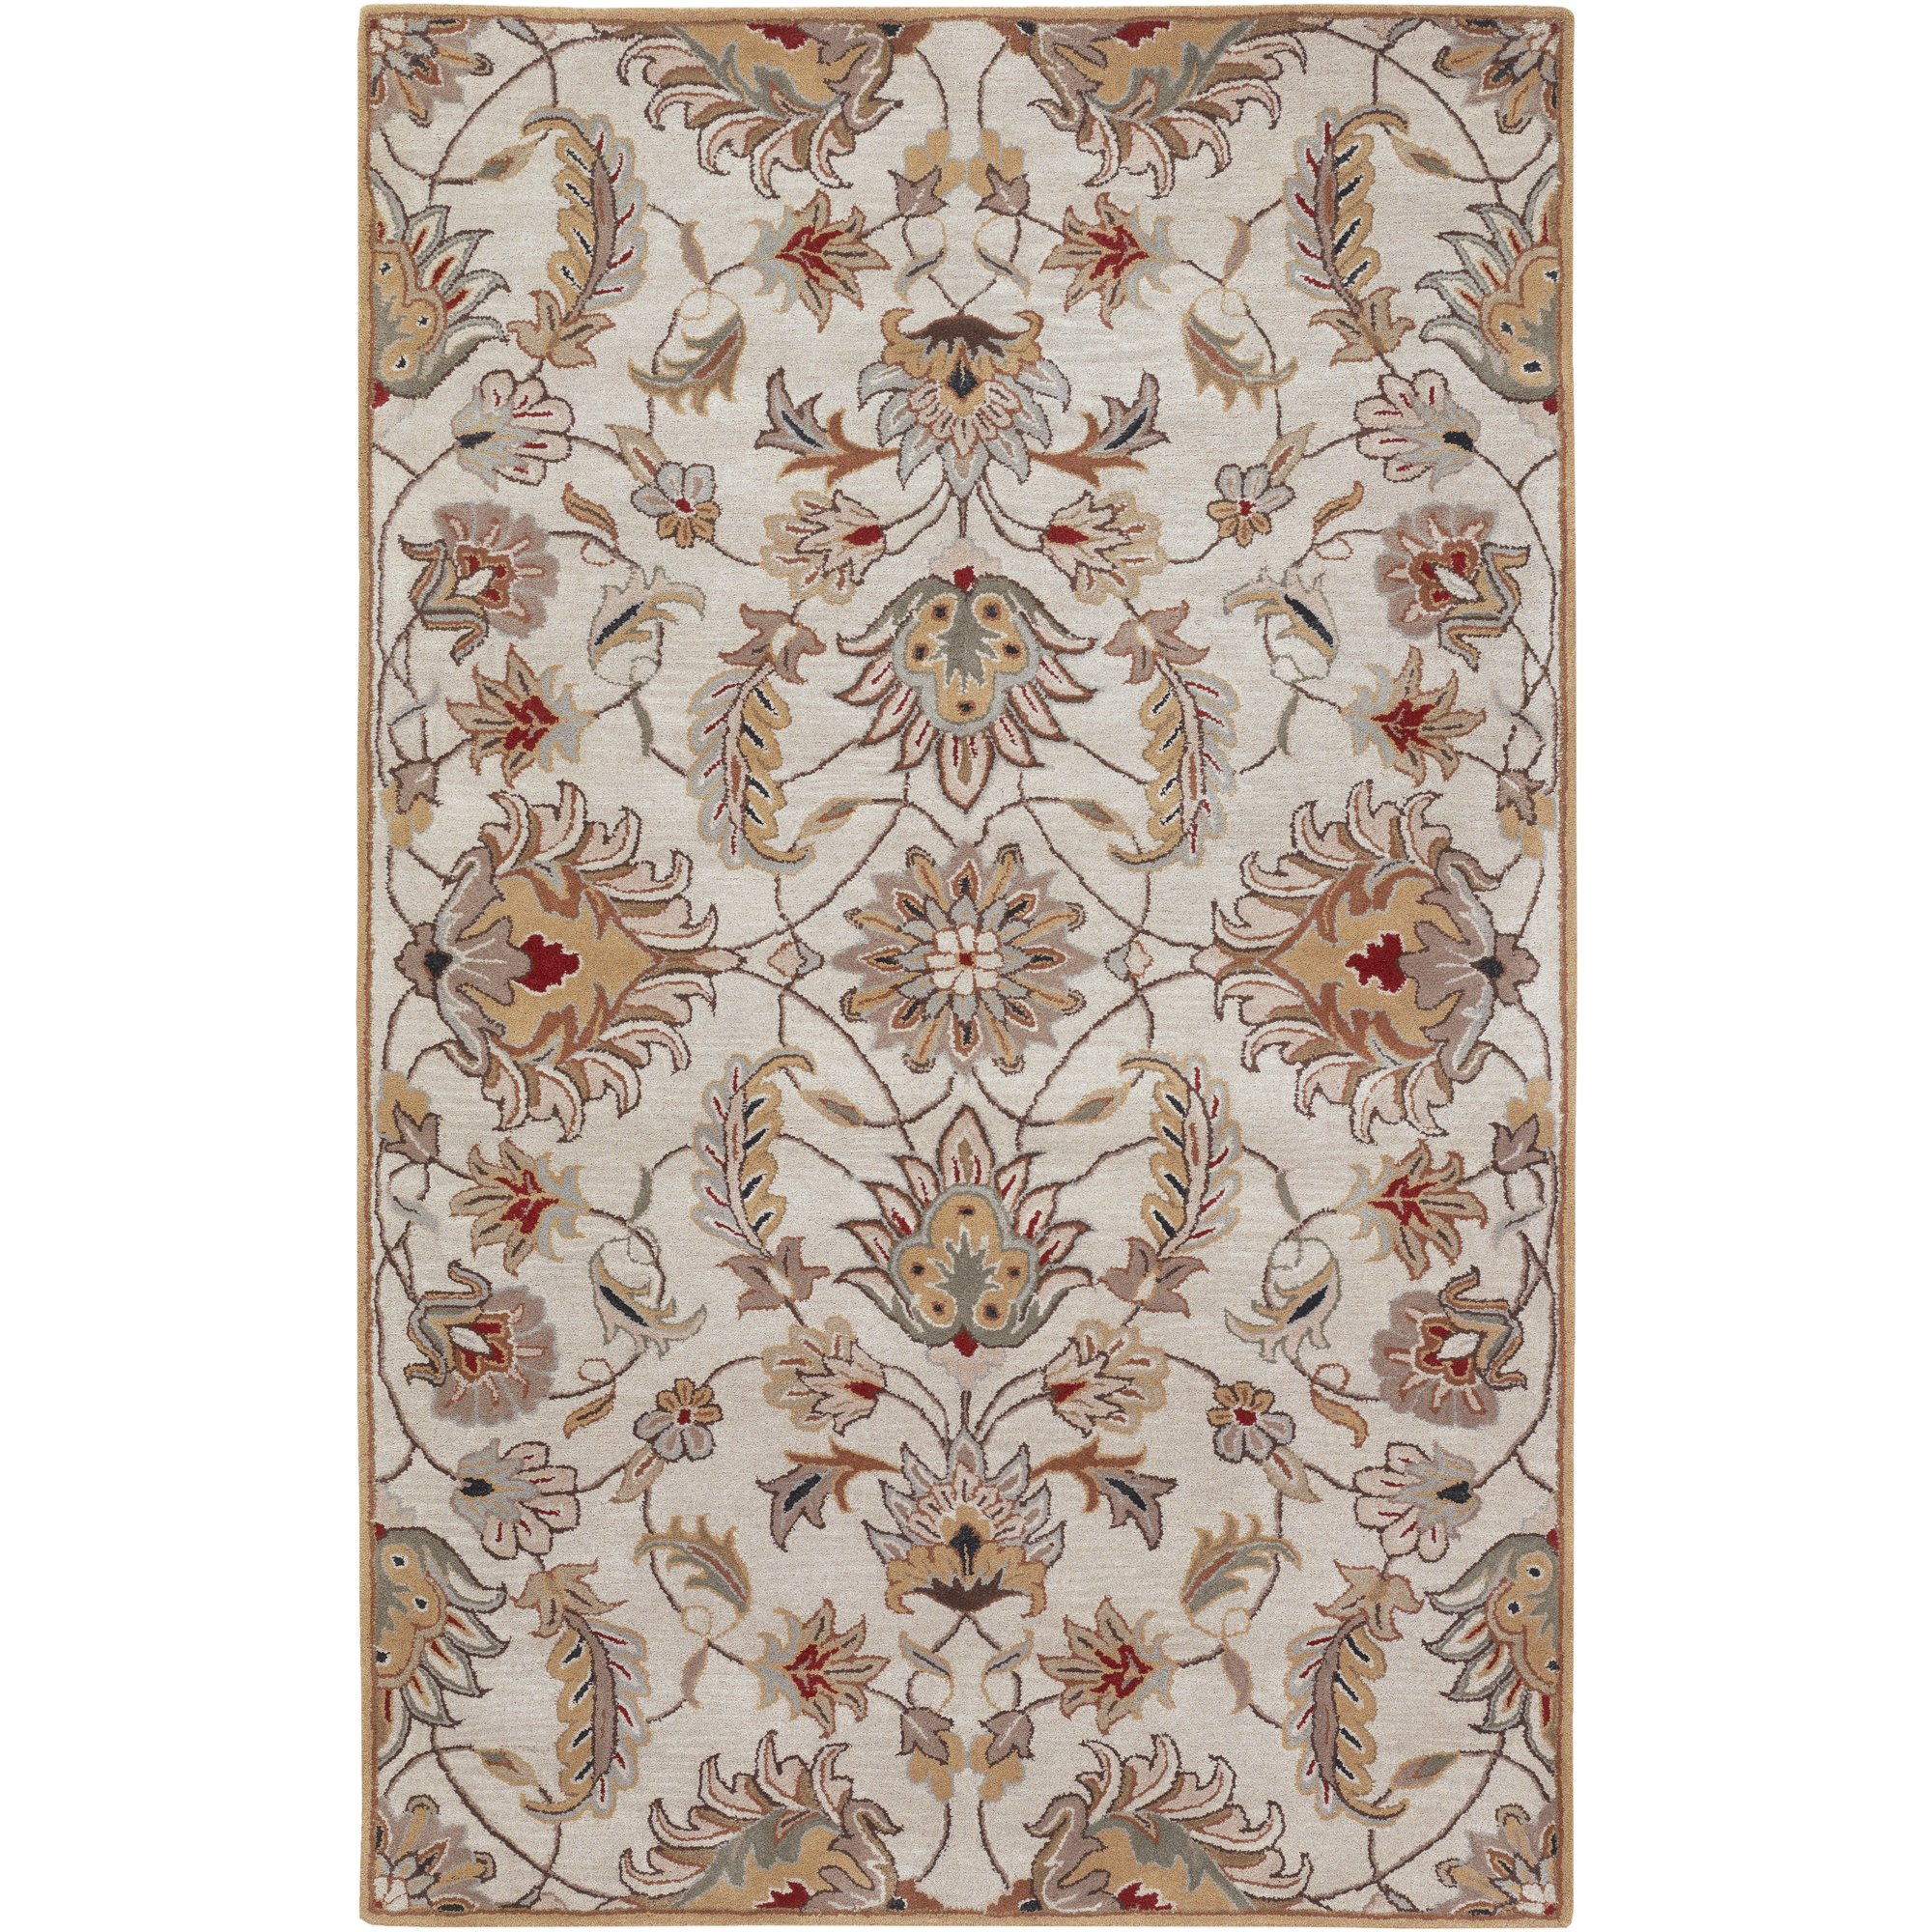 Surya Caesar CAE-1029 Classic Hand Tufted 100% Wool Feather Gray 2'6'' x 8' Traditional Runner